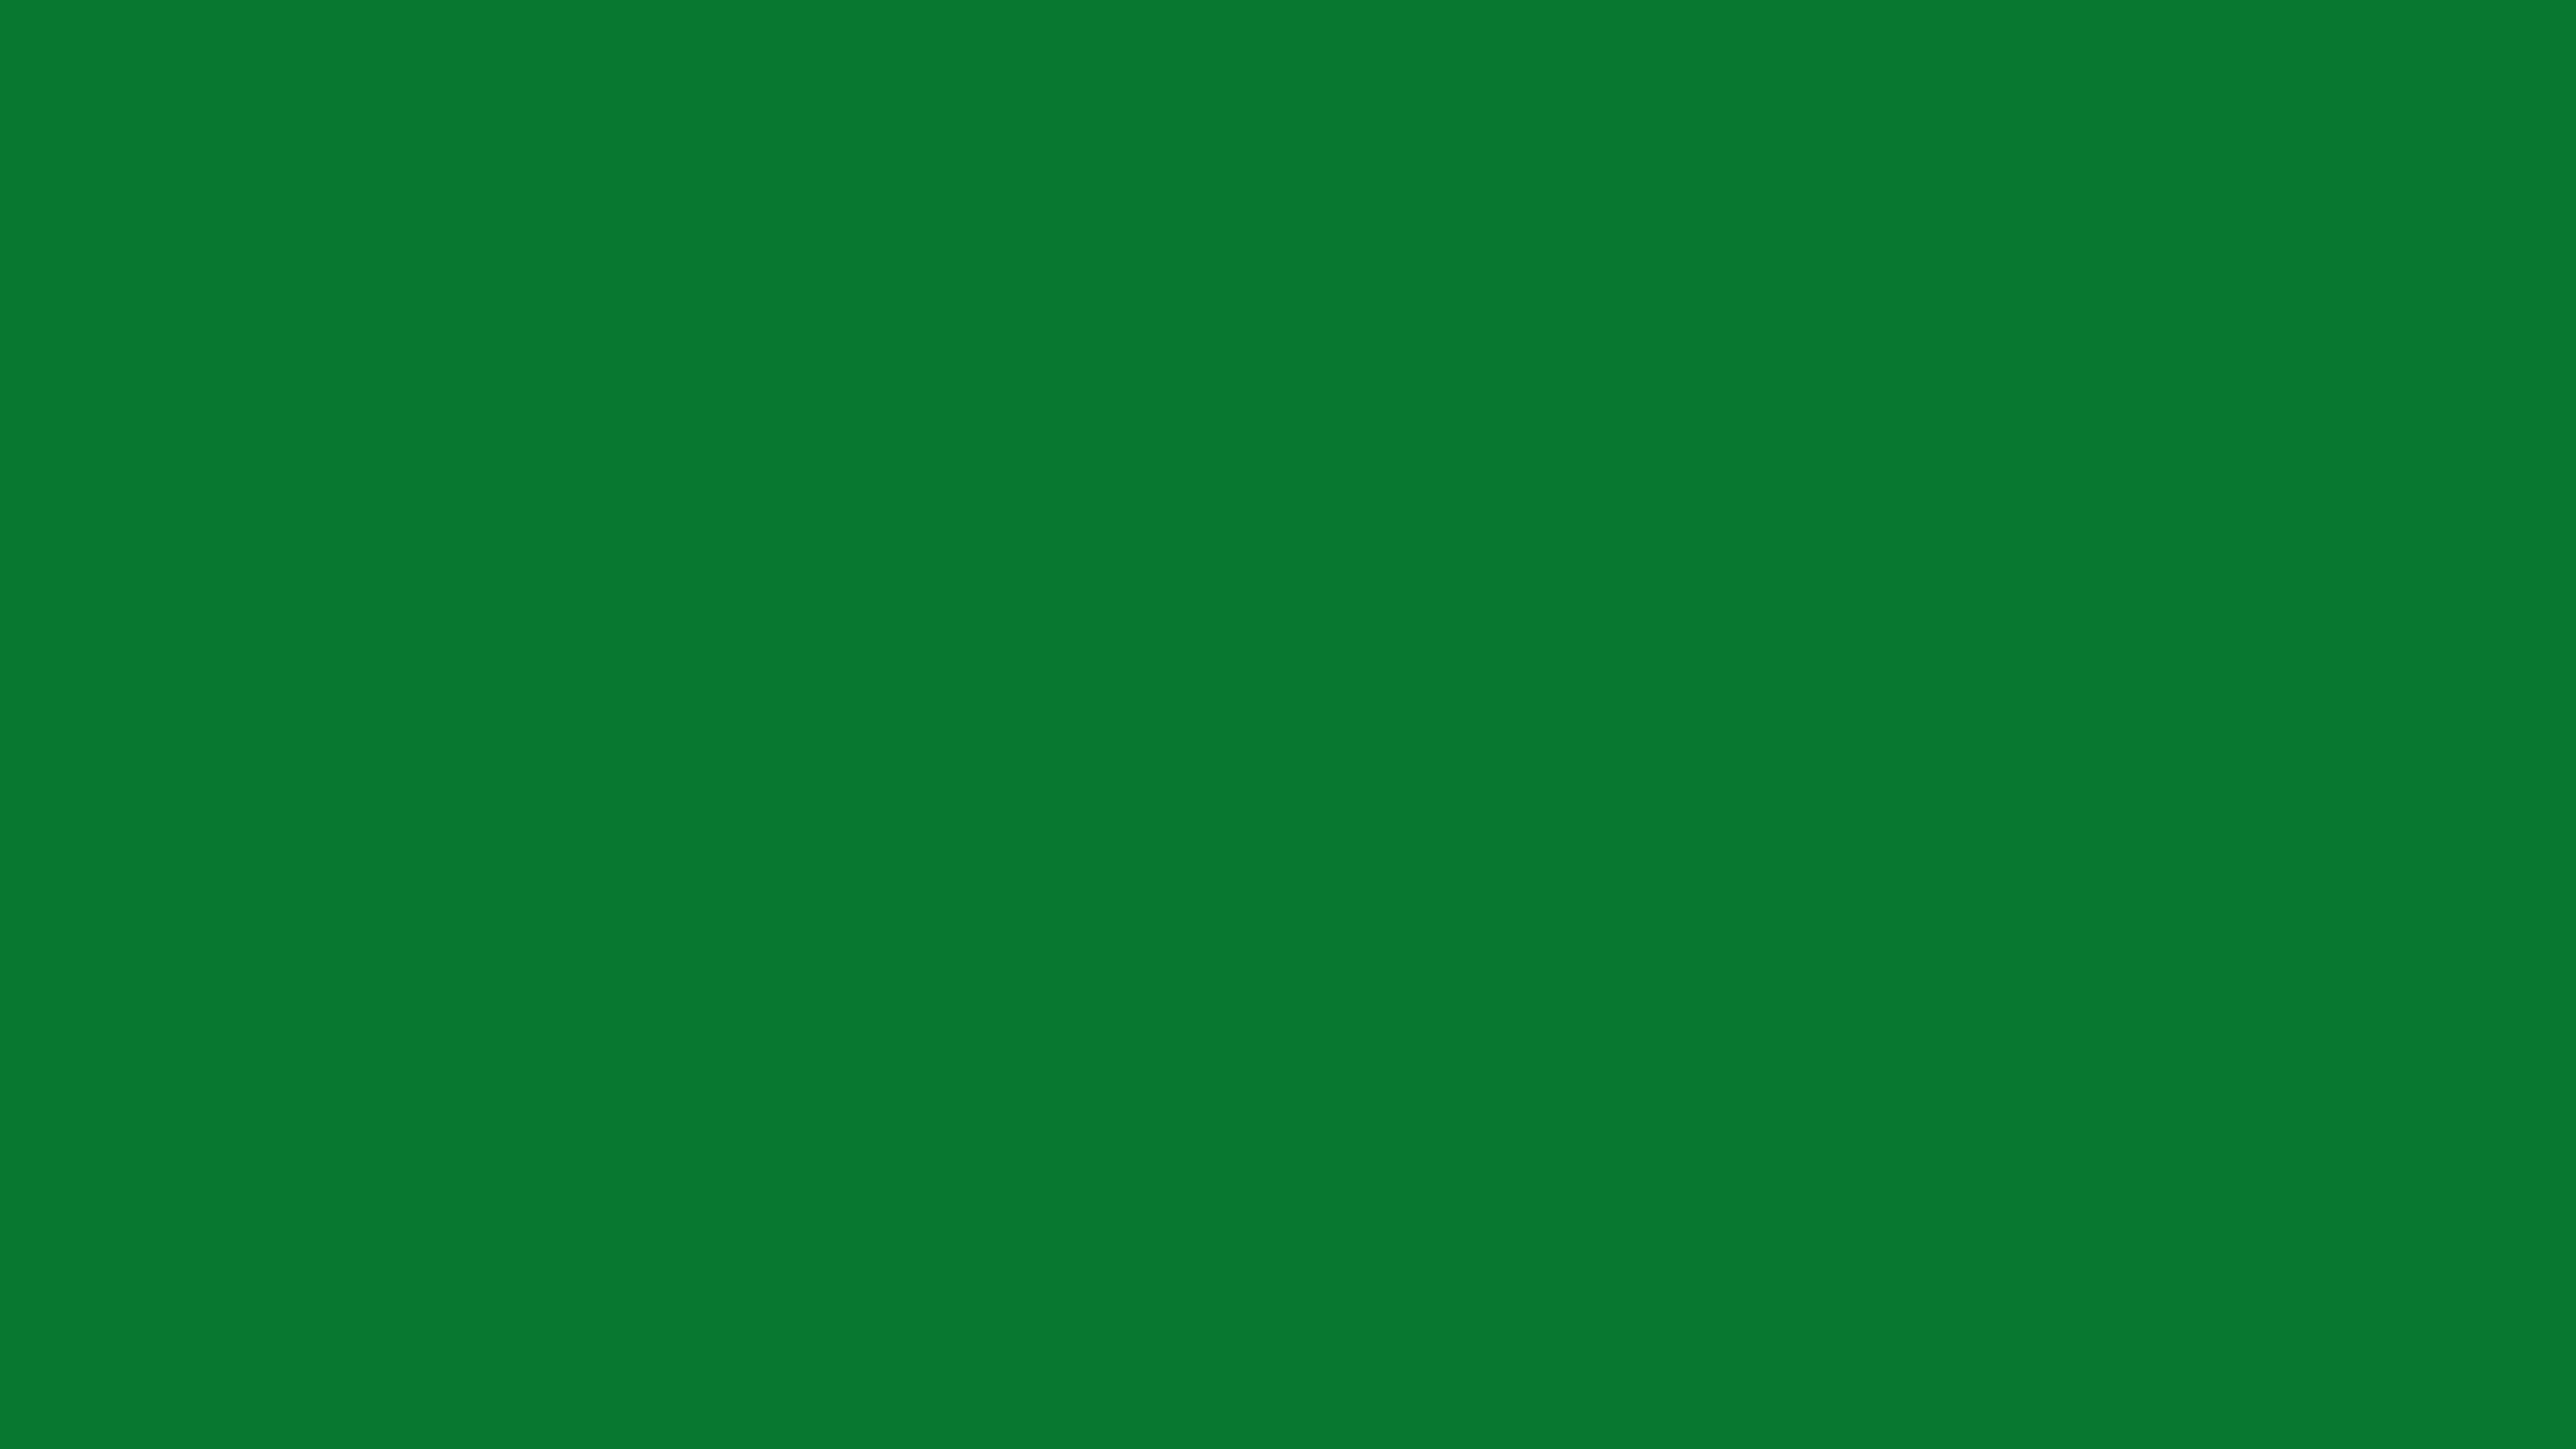 4096x2304 La Salle Green Solid Color Background